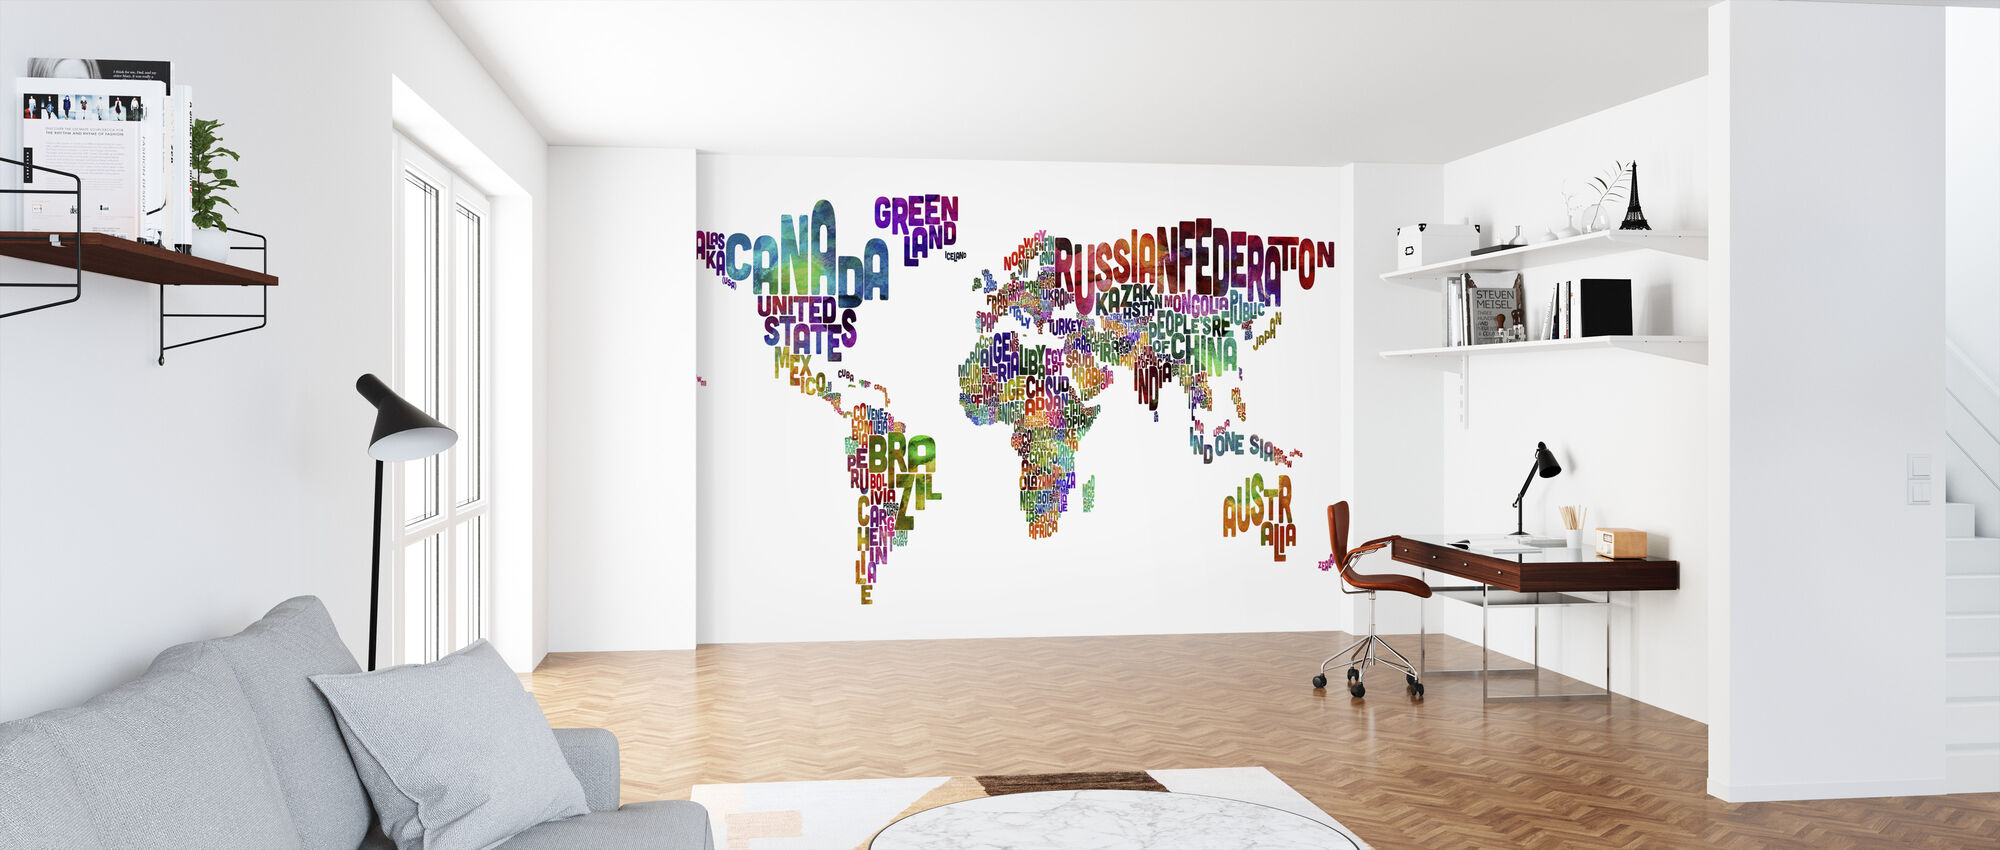 Typographic Text World Map - Wallpaper - Office